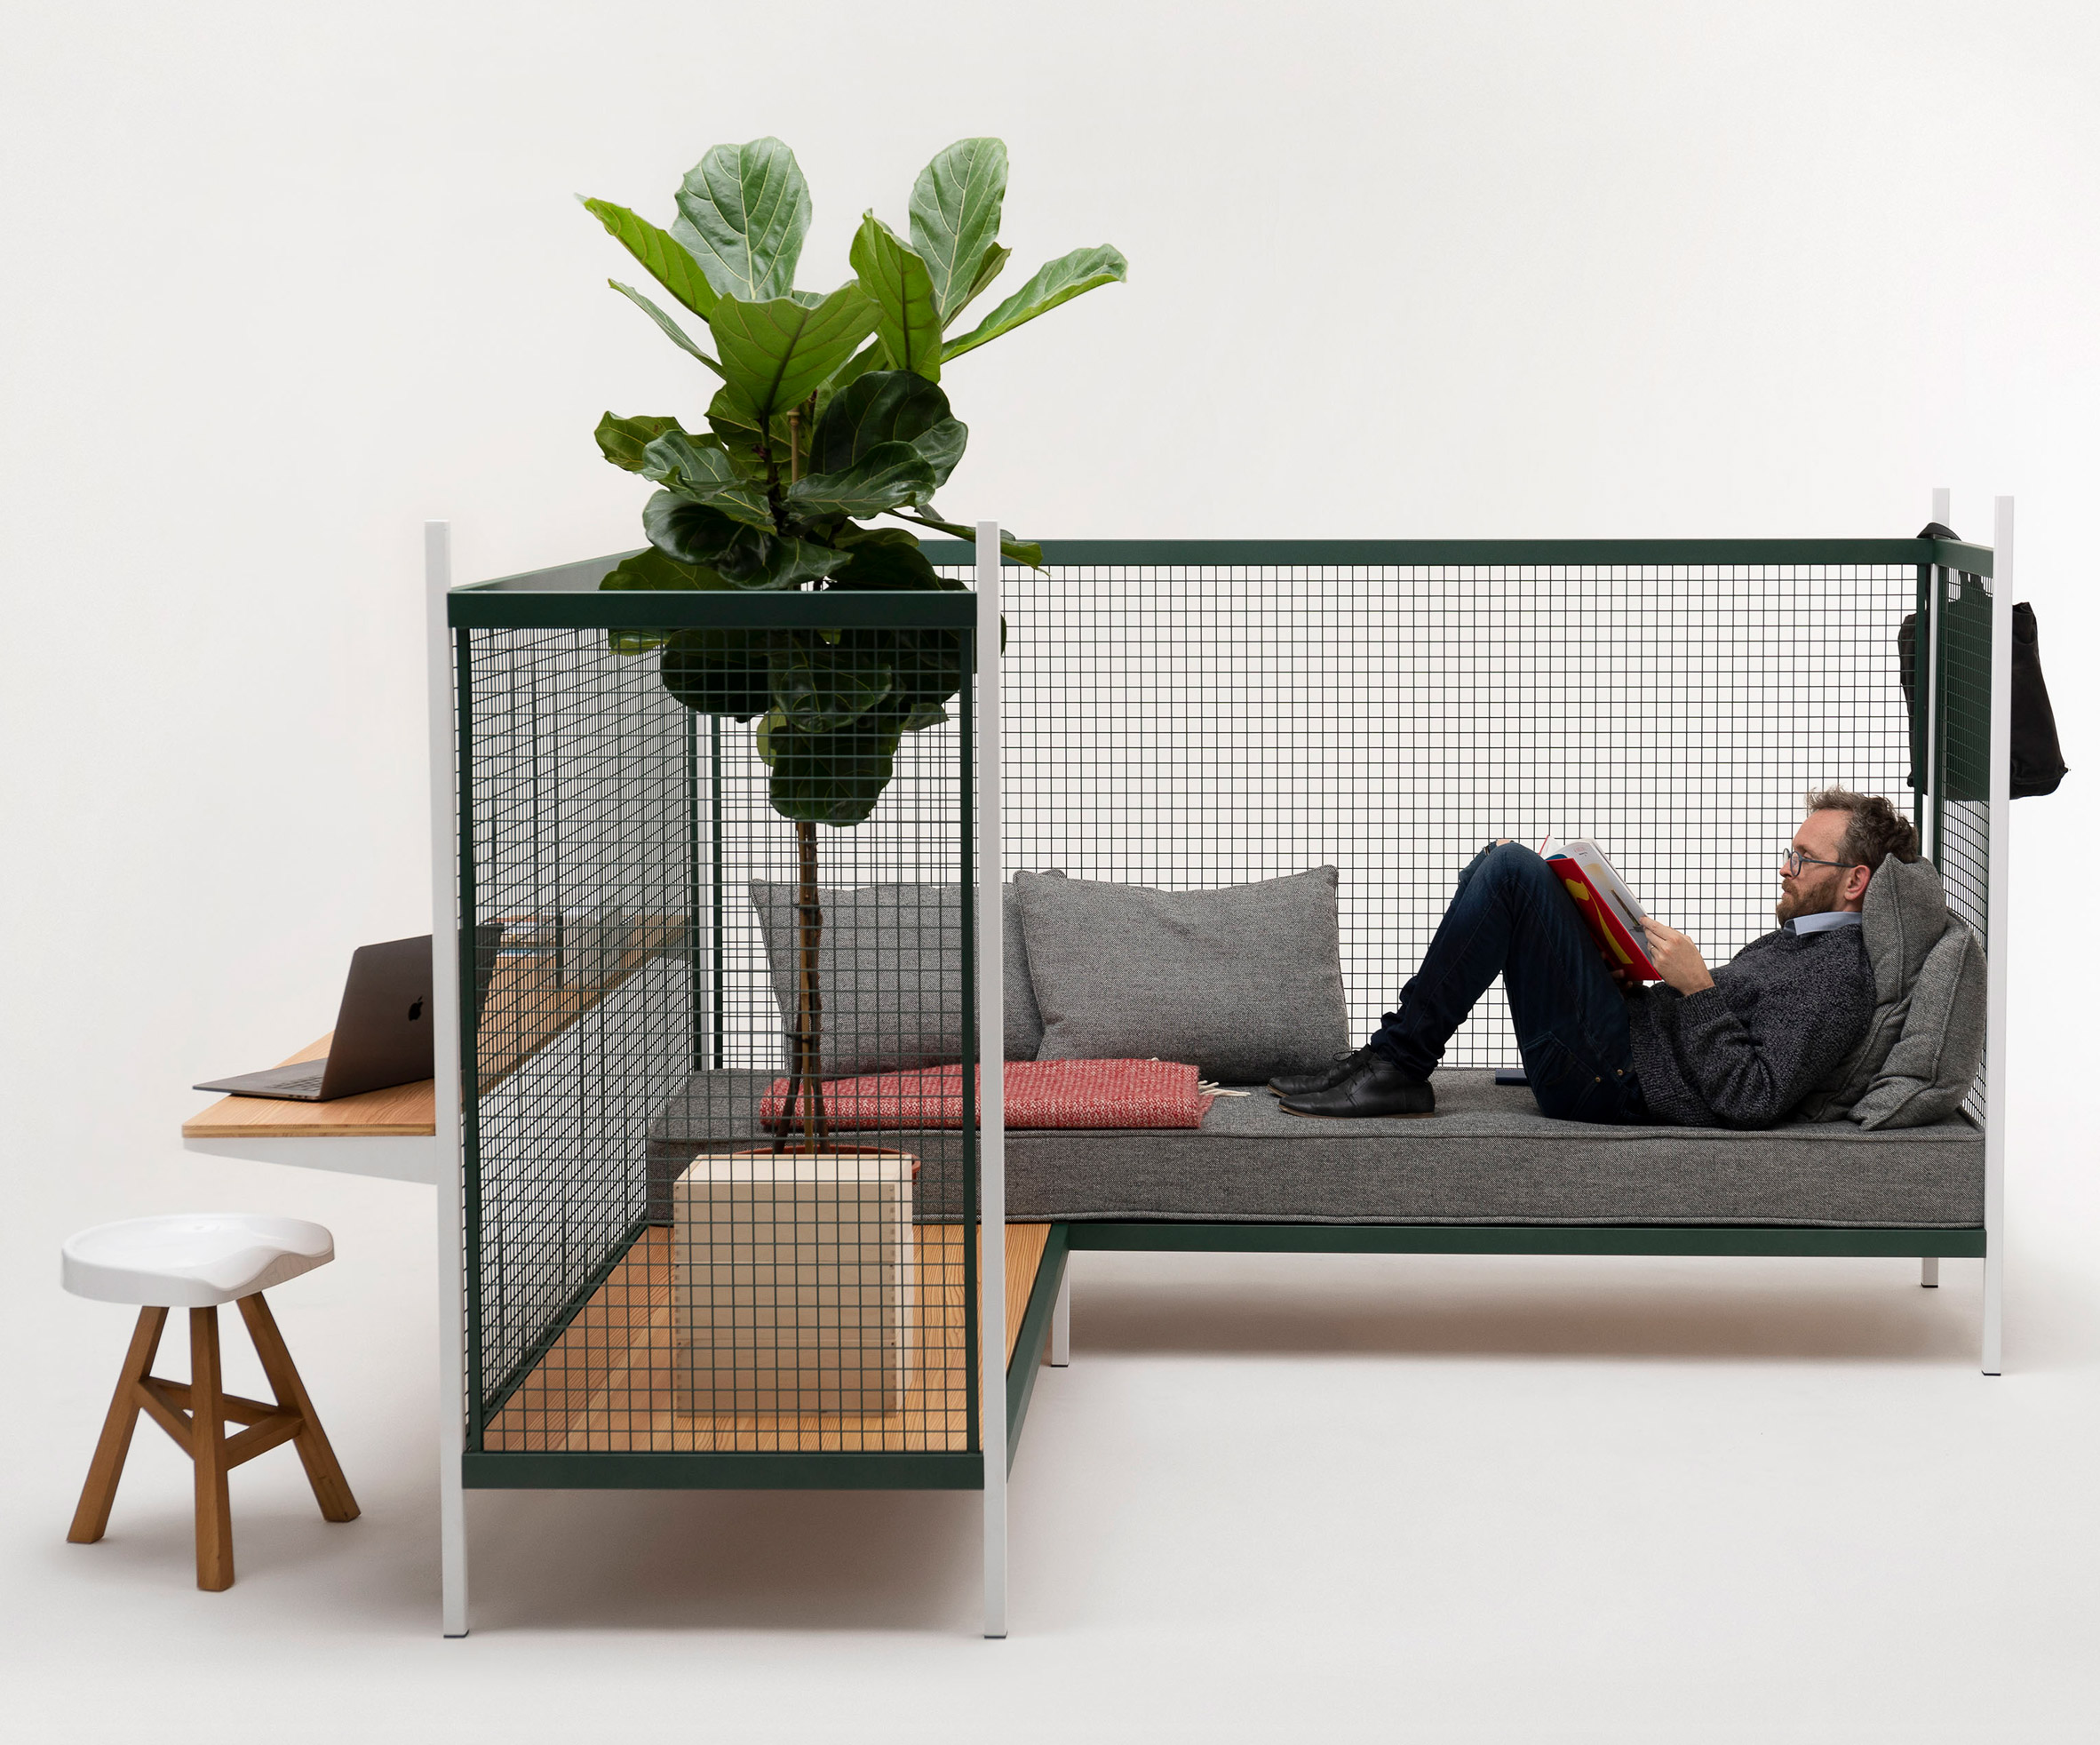 established-sons-at-work-office-furniture-products_dezeen_2364_col_5.jpg